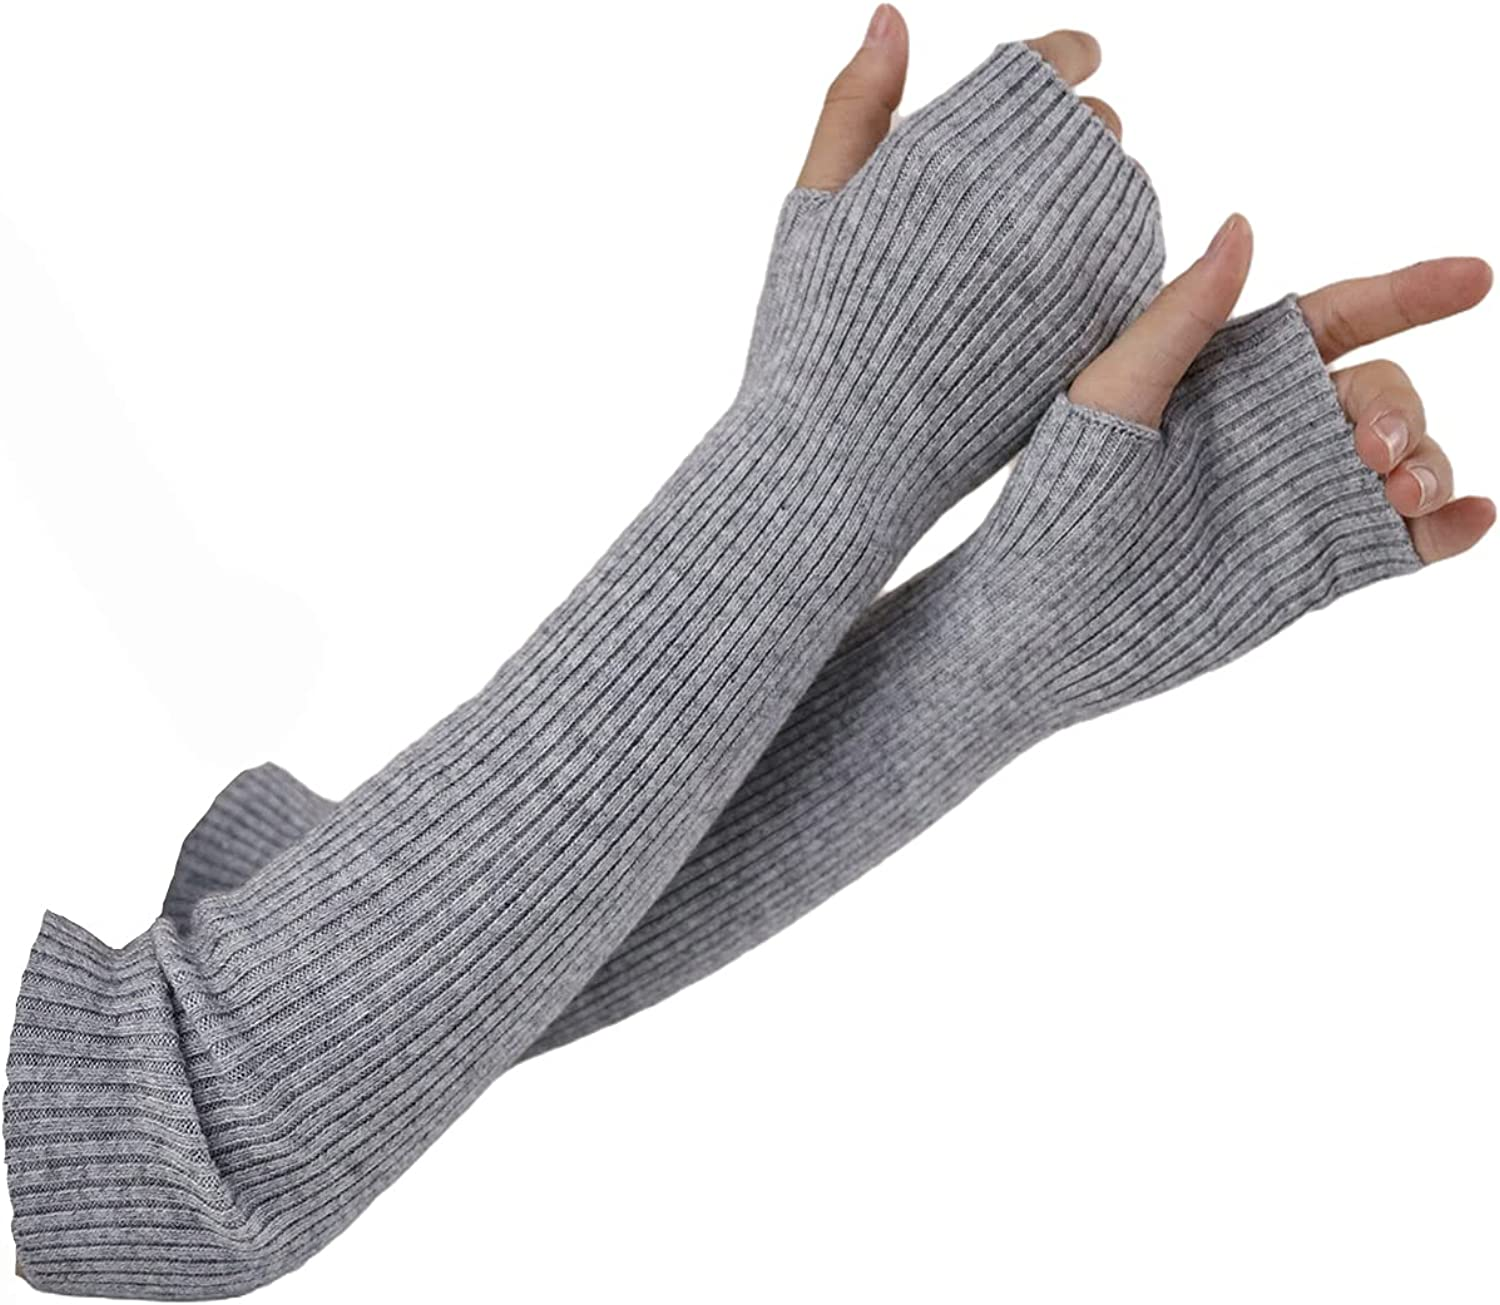 Arm Warmers Women, Facecozy Knit Warm Cashmere Blend Long Fingerless Gloves for Women Cold Weather Mittens with Thumb Hole